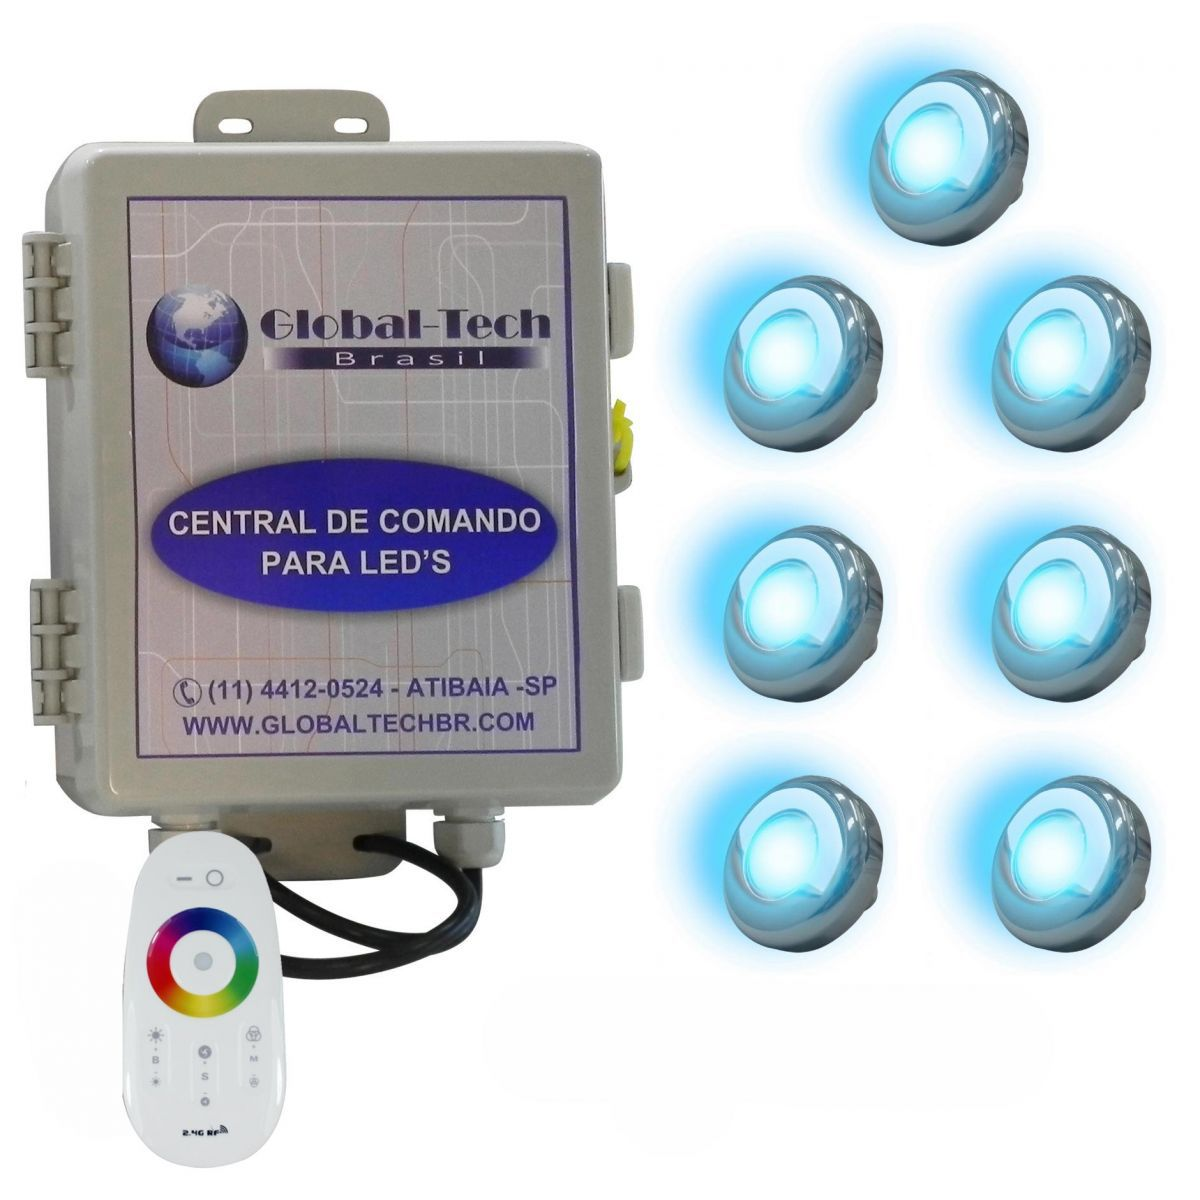 Led Piscina - Kit 7 Led Tholz 9W Inox RGB + Central + Controle Touch